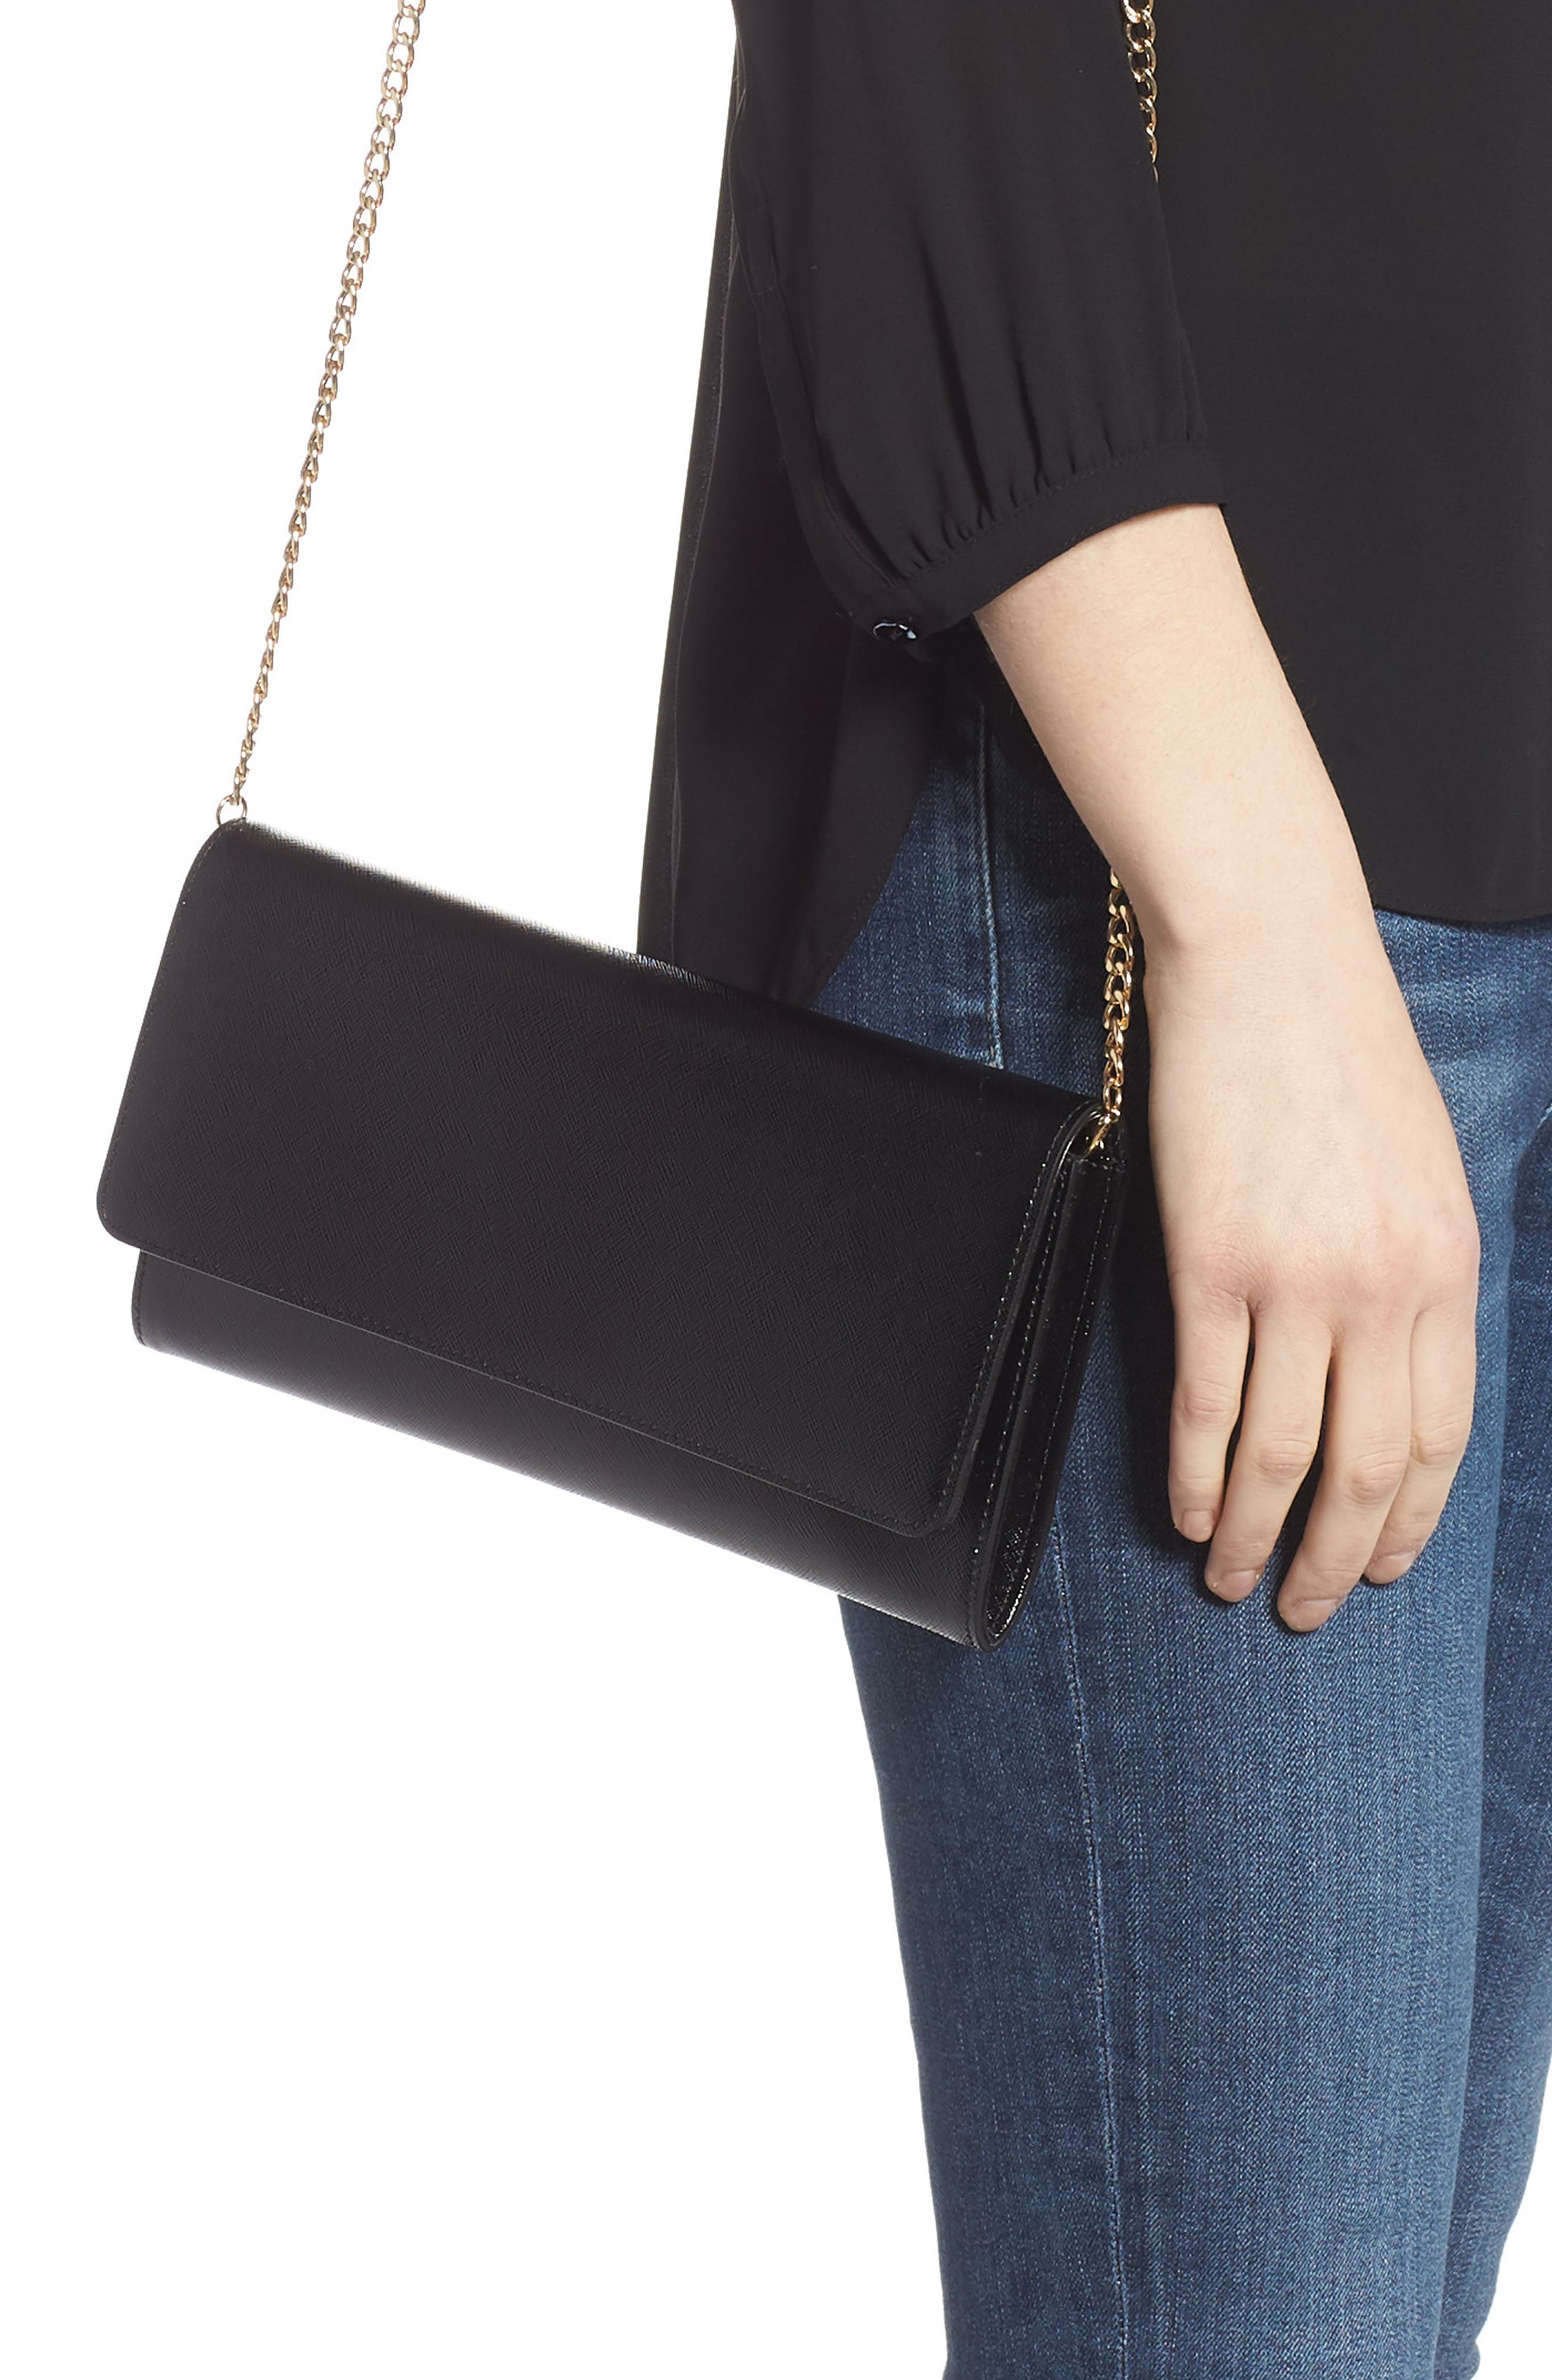 NORDSTROM, Selena Leather Clutch, Alternate thumbnail 2, color, BLACK